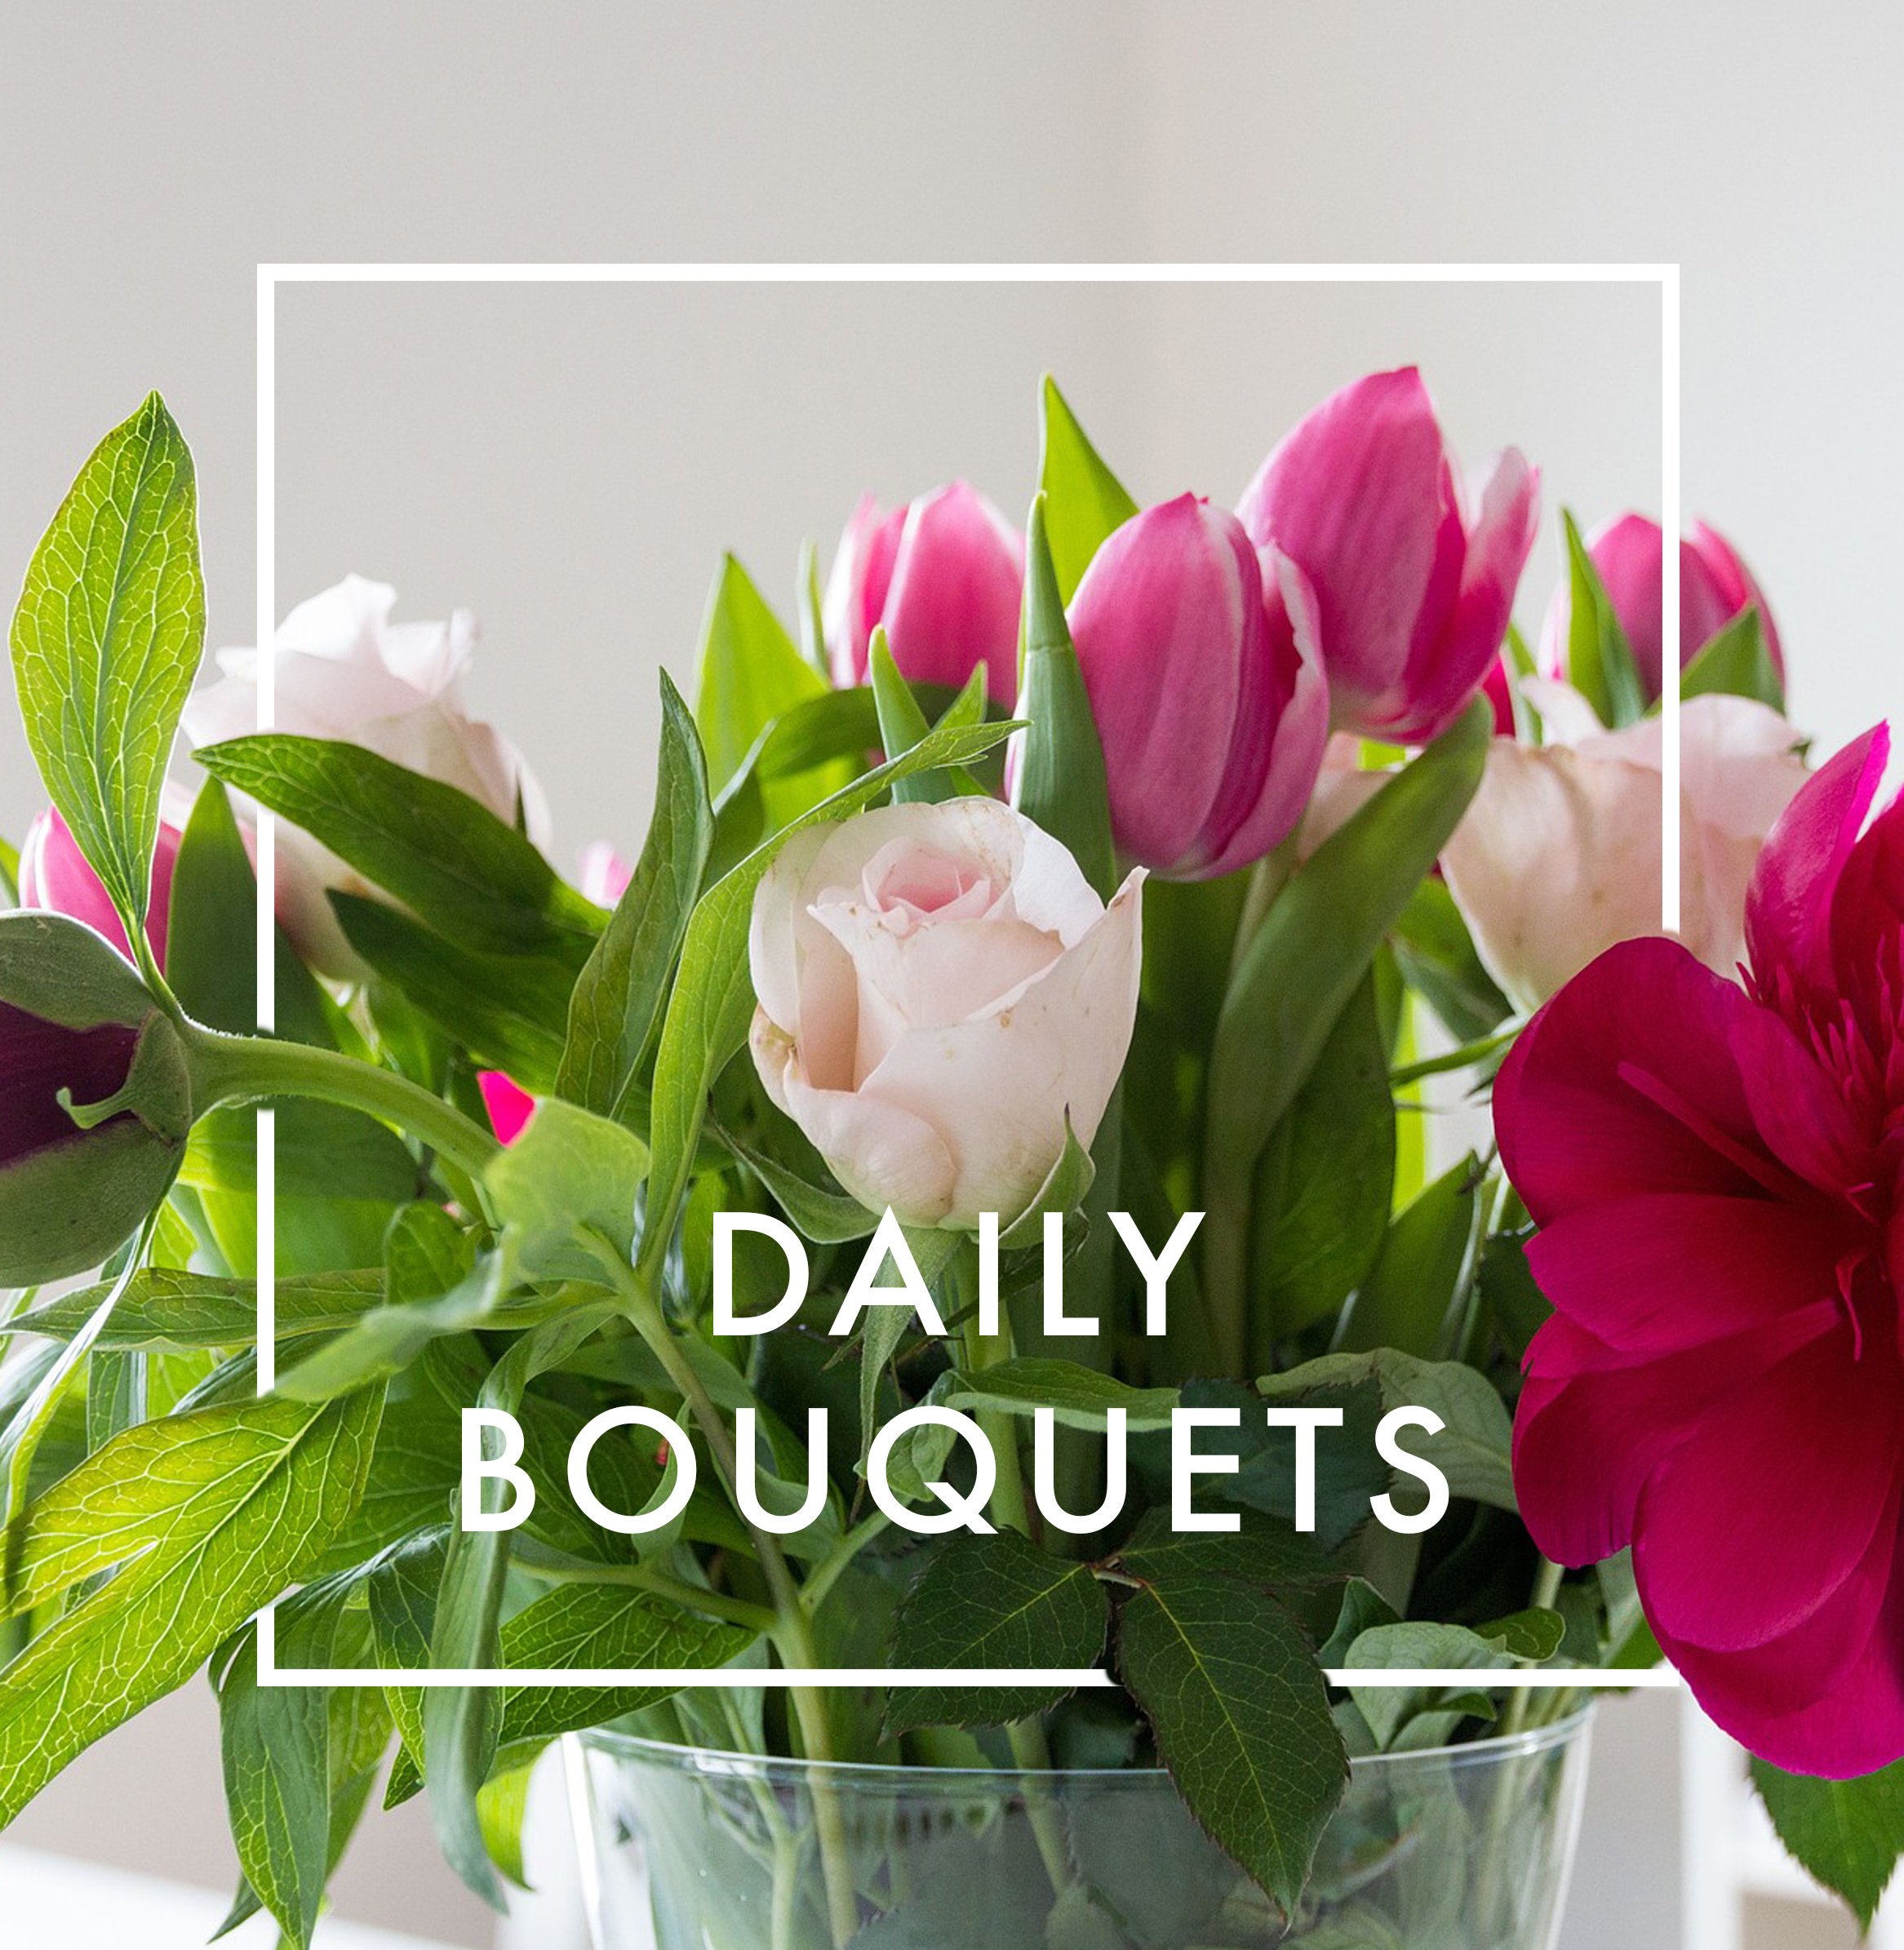 BOUQUETS_boxed.jpg